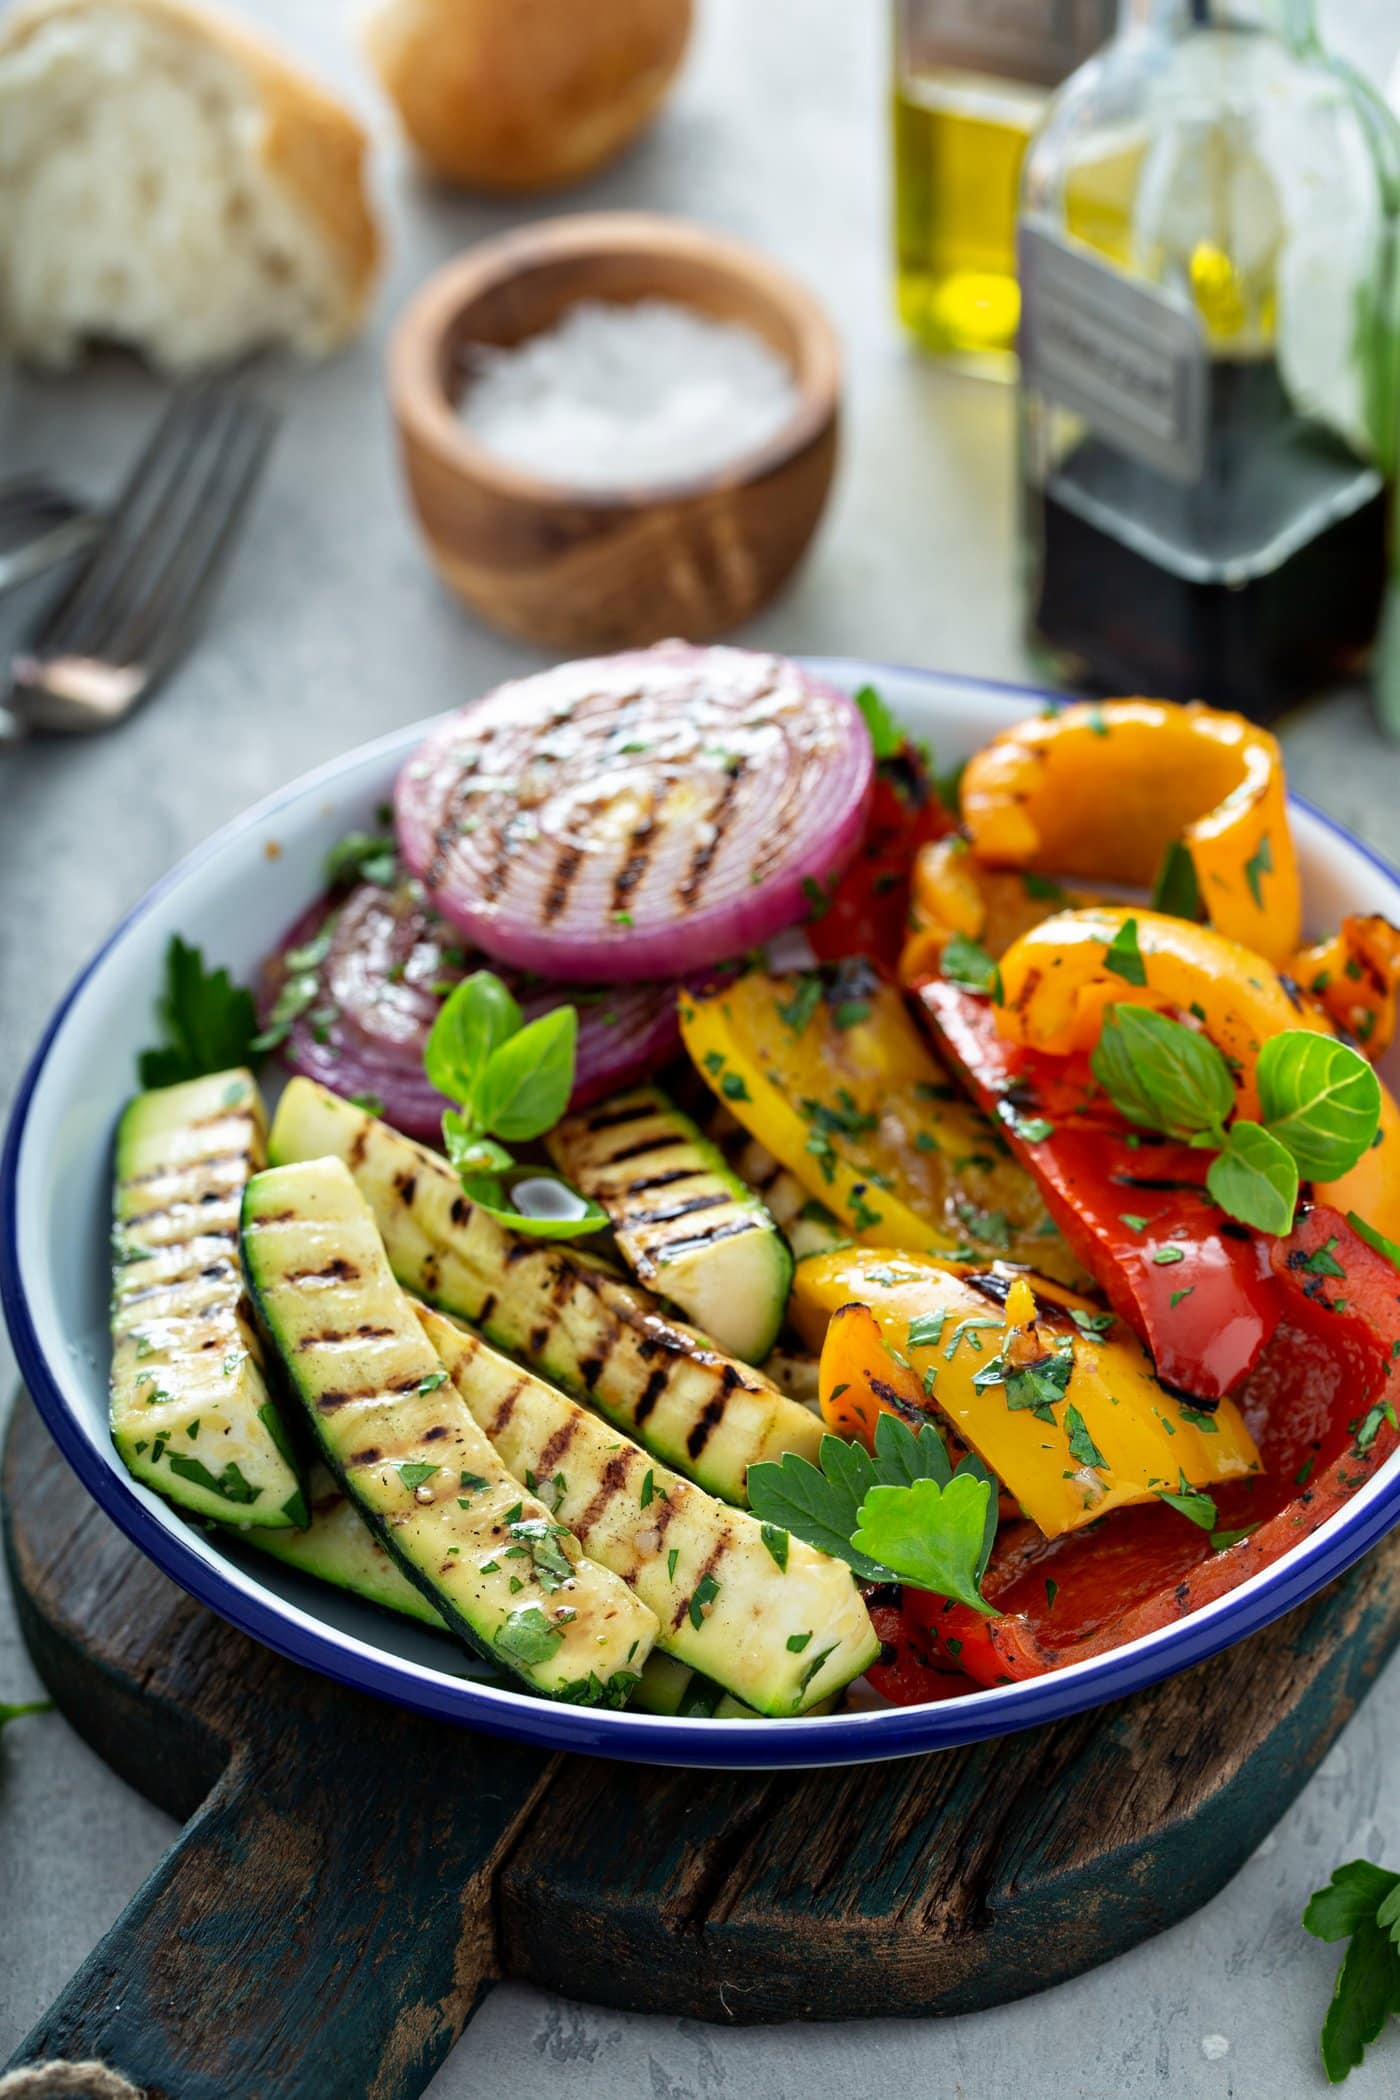 A plate of grilled vegetables. The zucchini, bell peppers, and red onions have beautiful grill marks and a few parsley leaves are scattered on top. There is a small wooden bowl of salt, a fork, and a glass cup of balsamic glaze in the background.